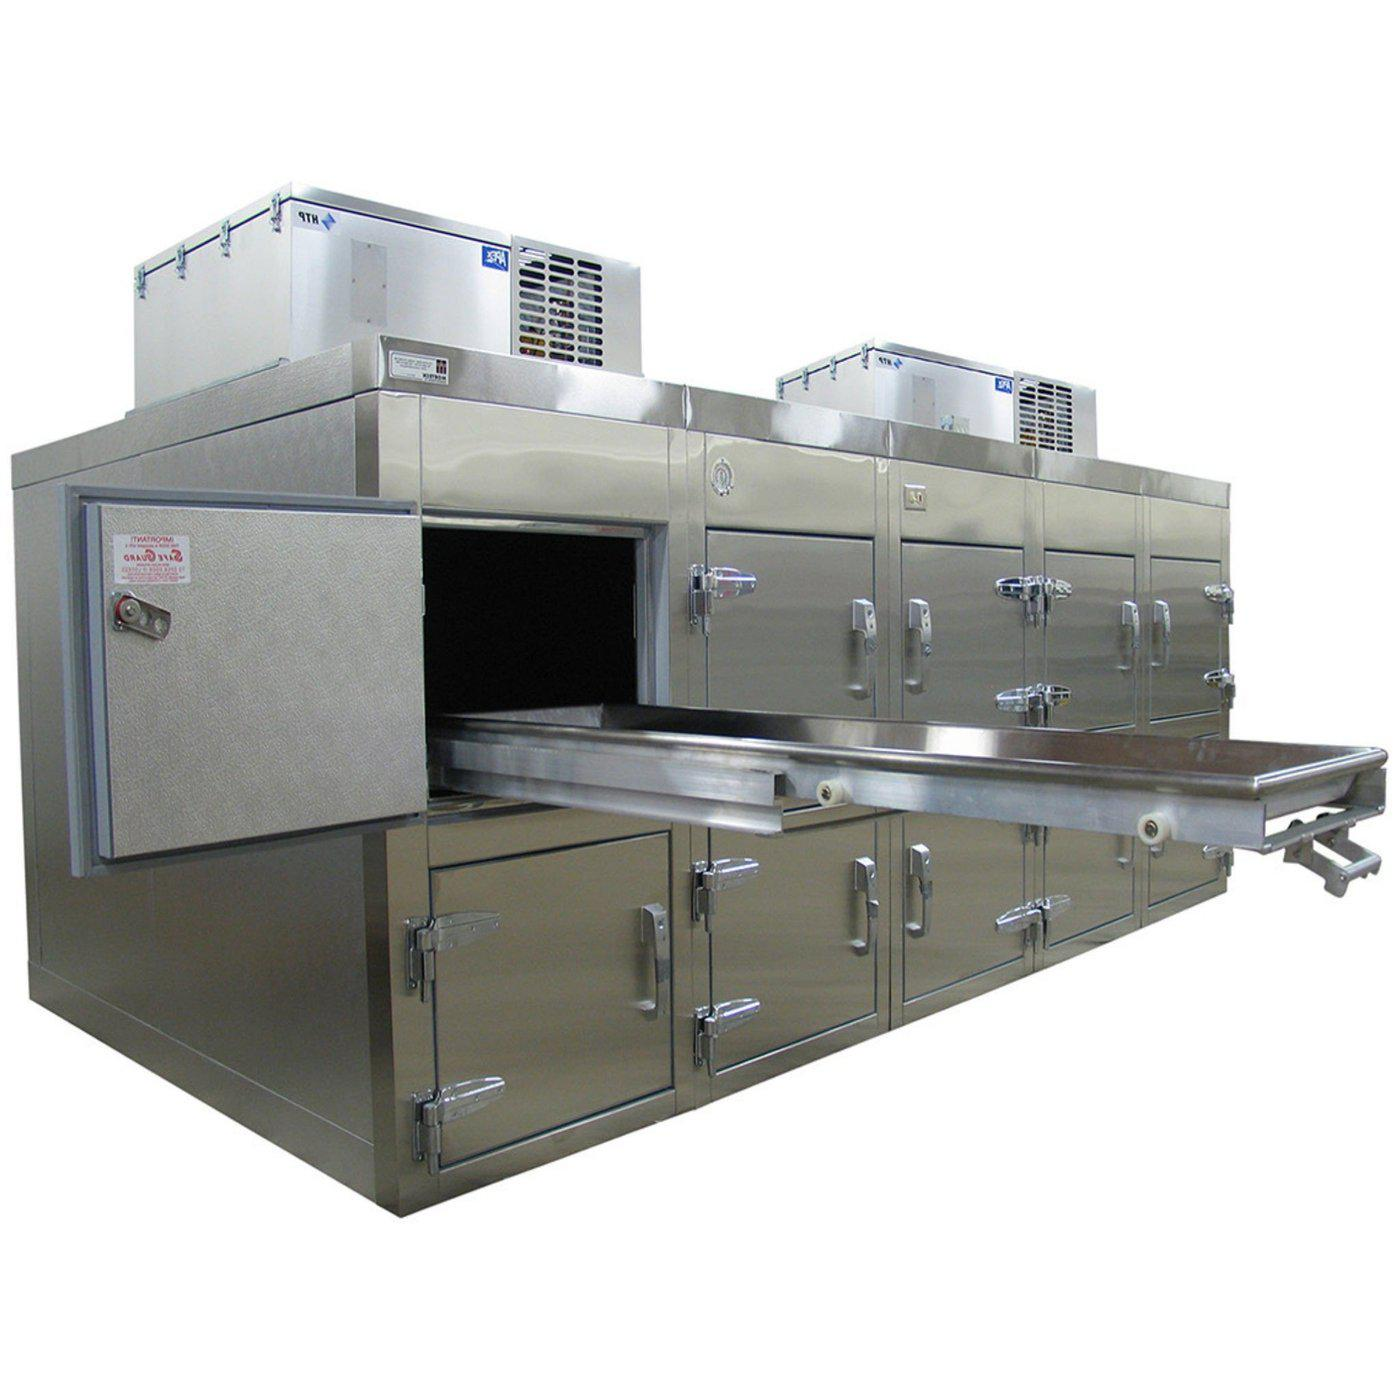 Ten Body Refrigerator-Refrigeration-Mortech Manufacturing Company Inc. Quality Stainless Steel Autopsy, Morgue, Funeral Home, Necropsy, Veterinary / Anatomy, Dissection Equipment and Accessories